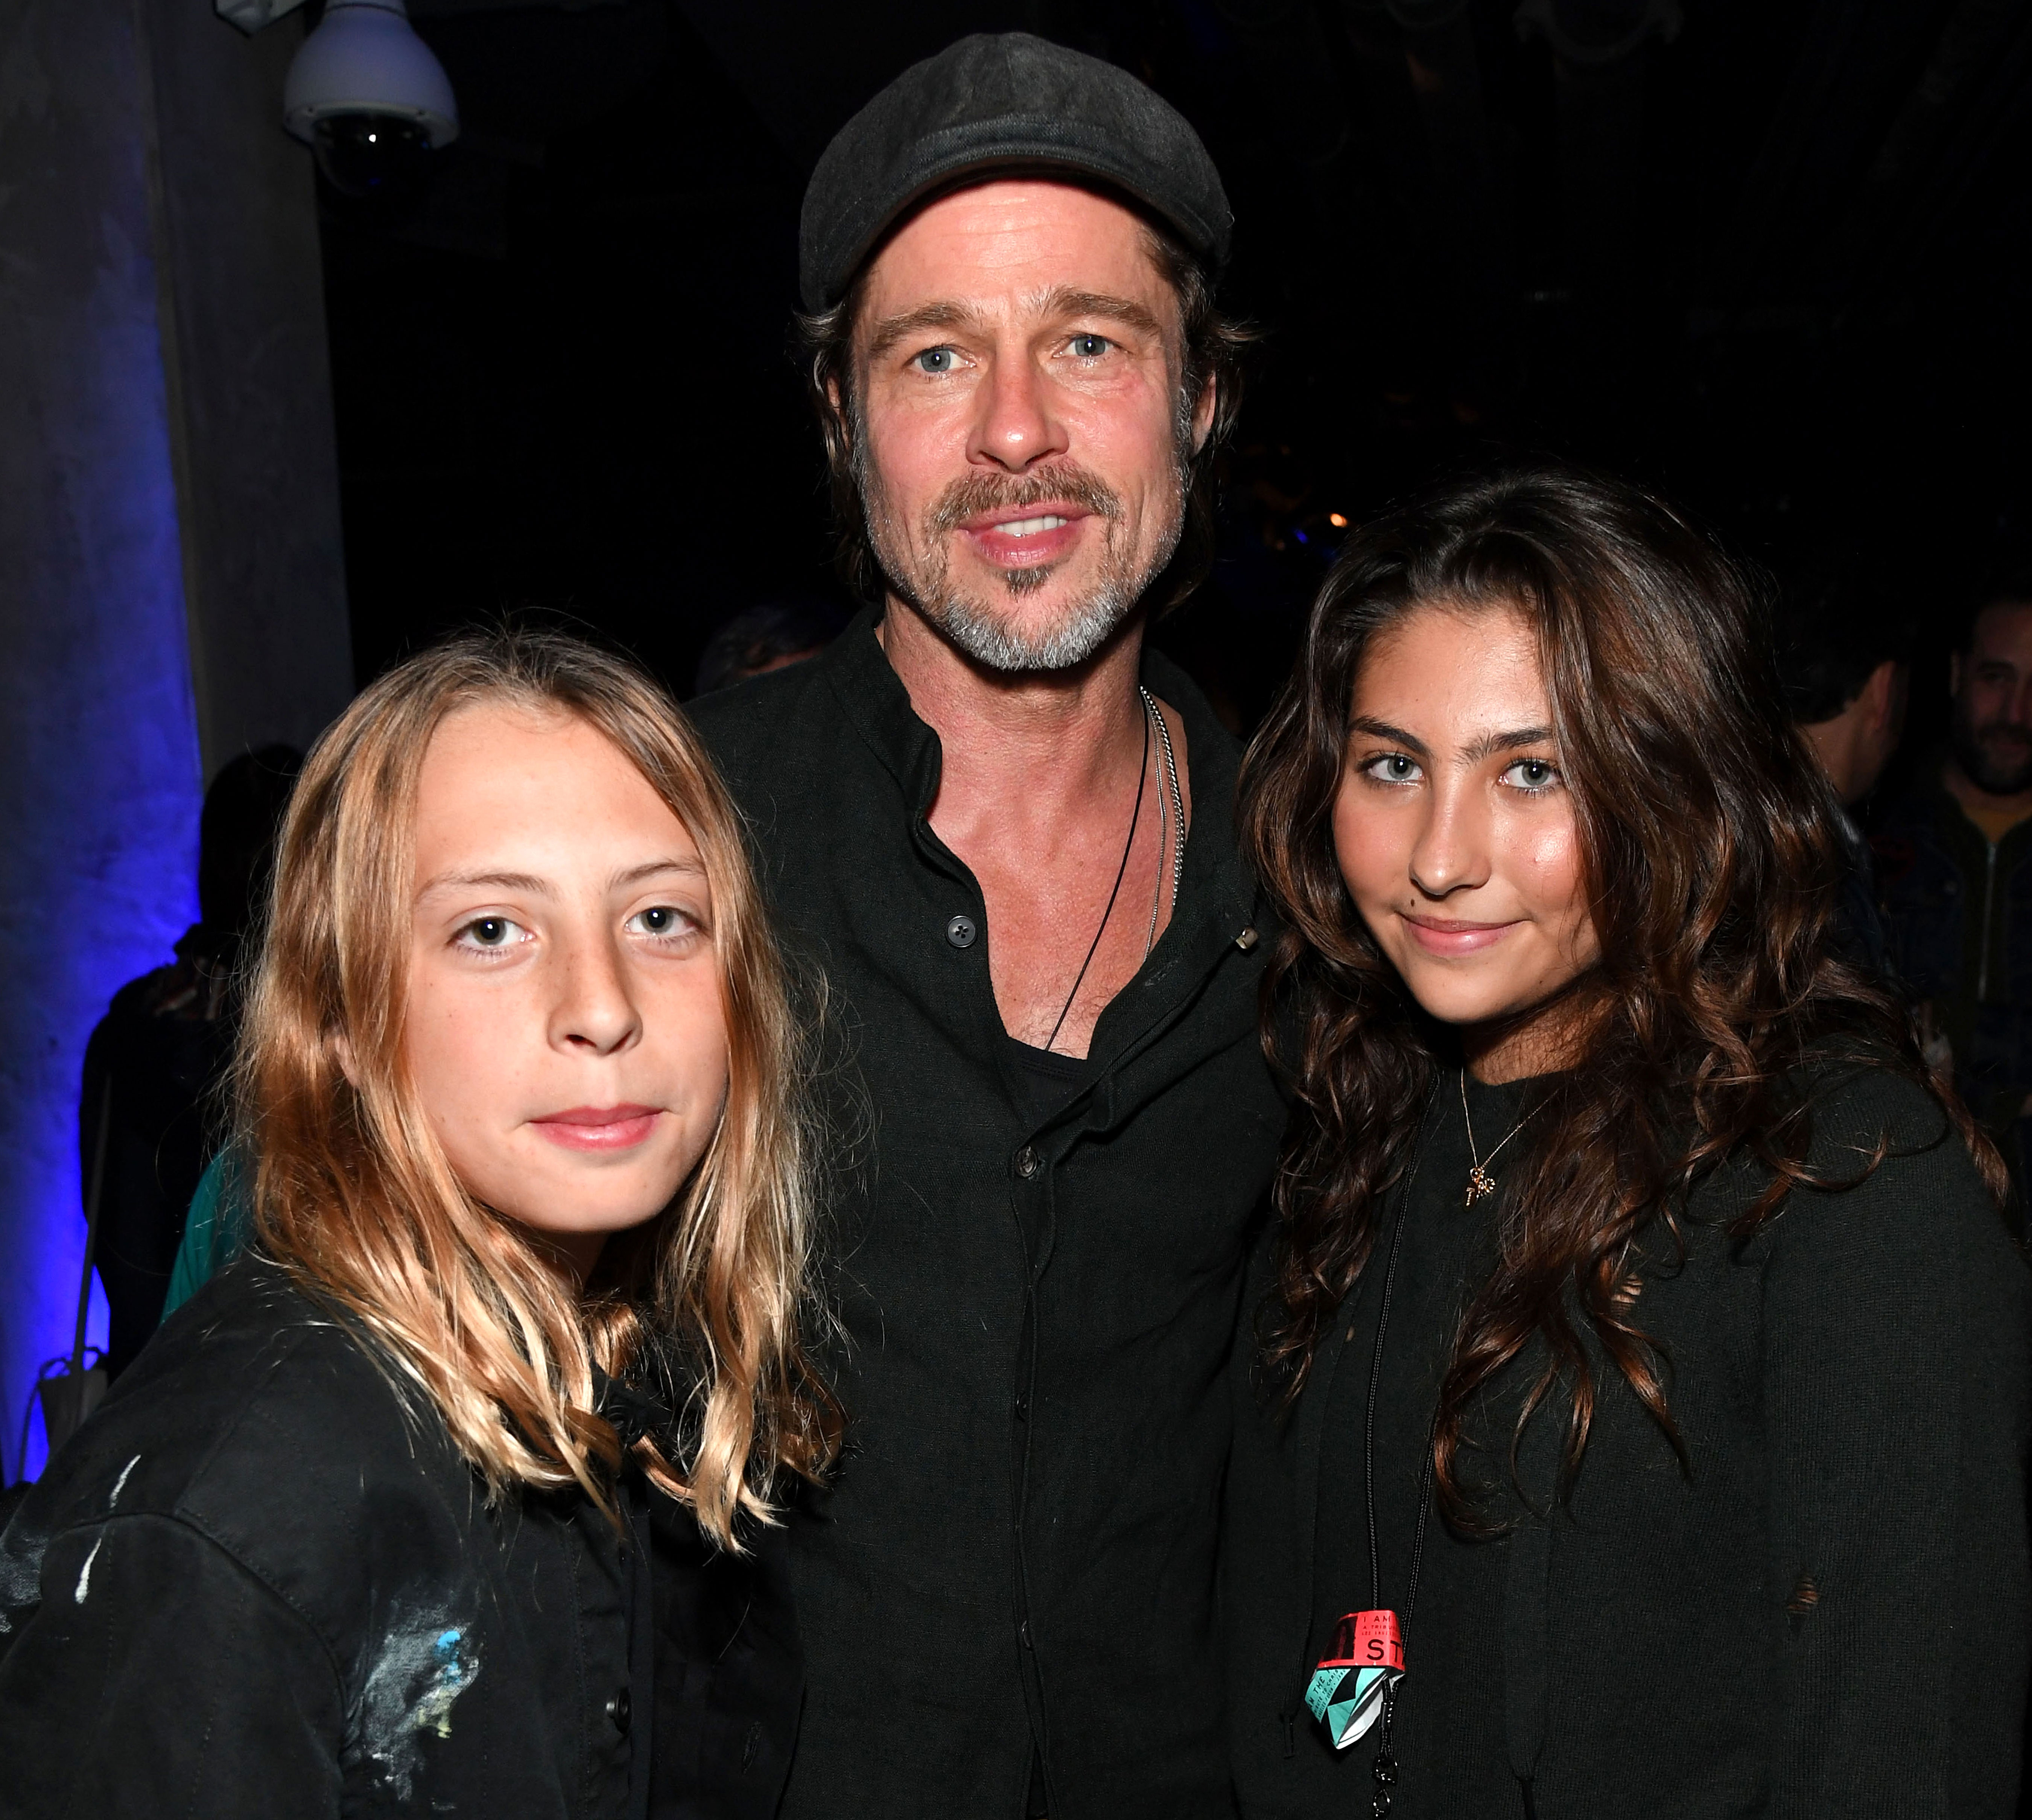 chris cornell tribute concert - The actor posed with Cornell's son, Christopher, and daughter Toni.